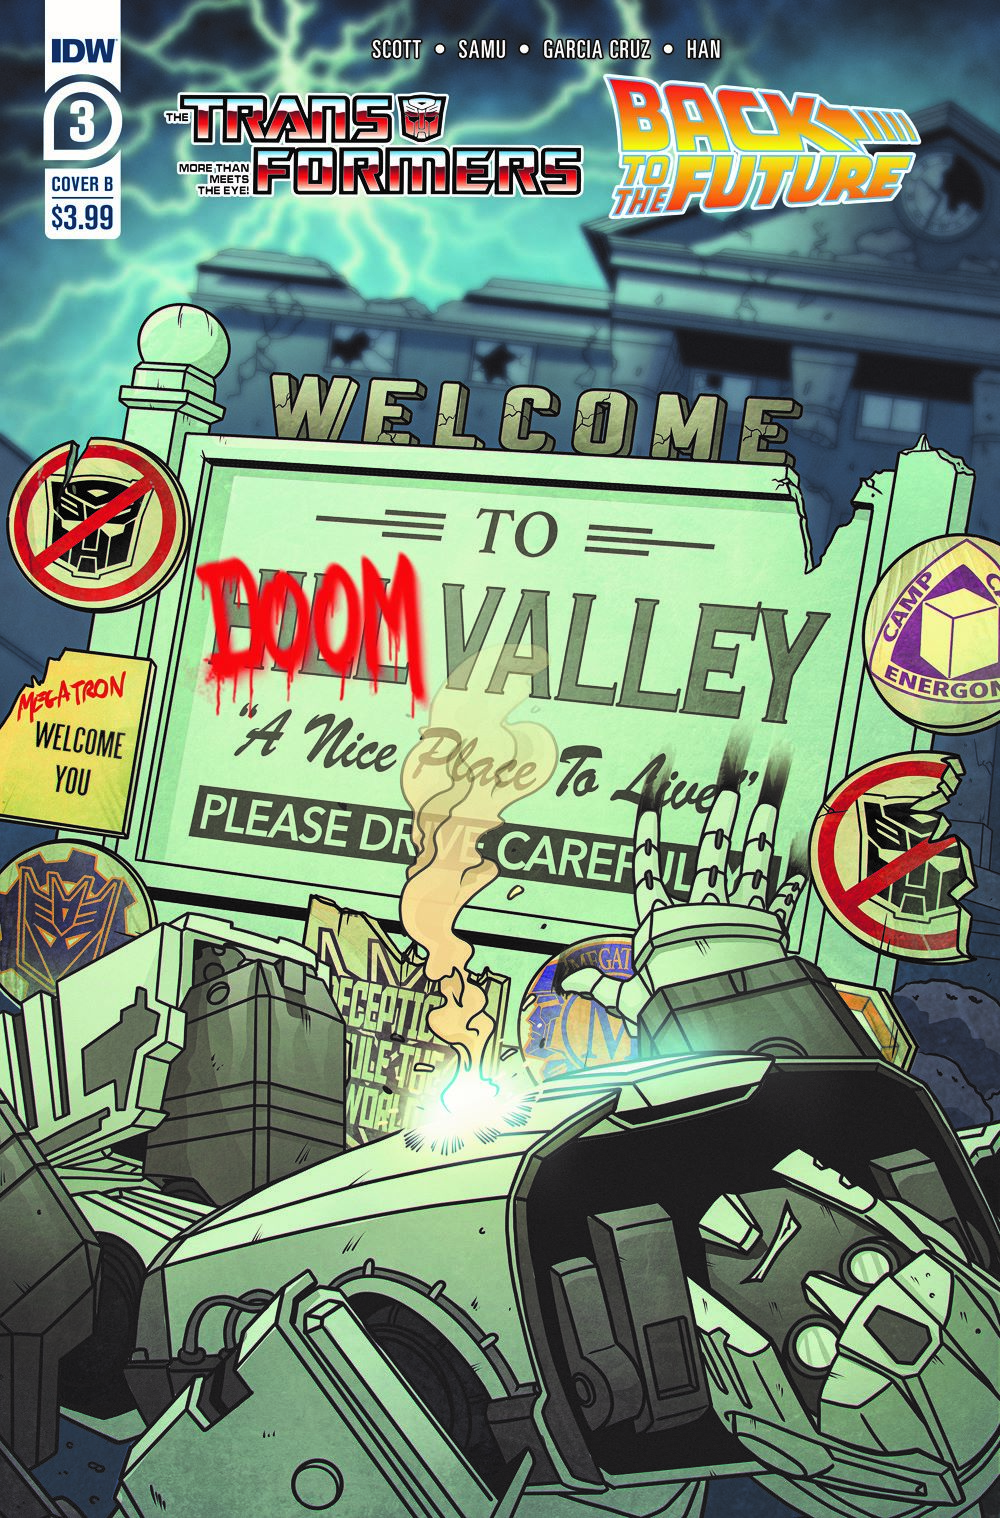 TF-BTTF03-coverB ComicList: IDW Publishing New Releases for 03/17/2021